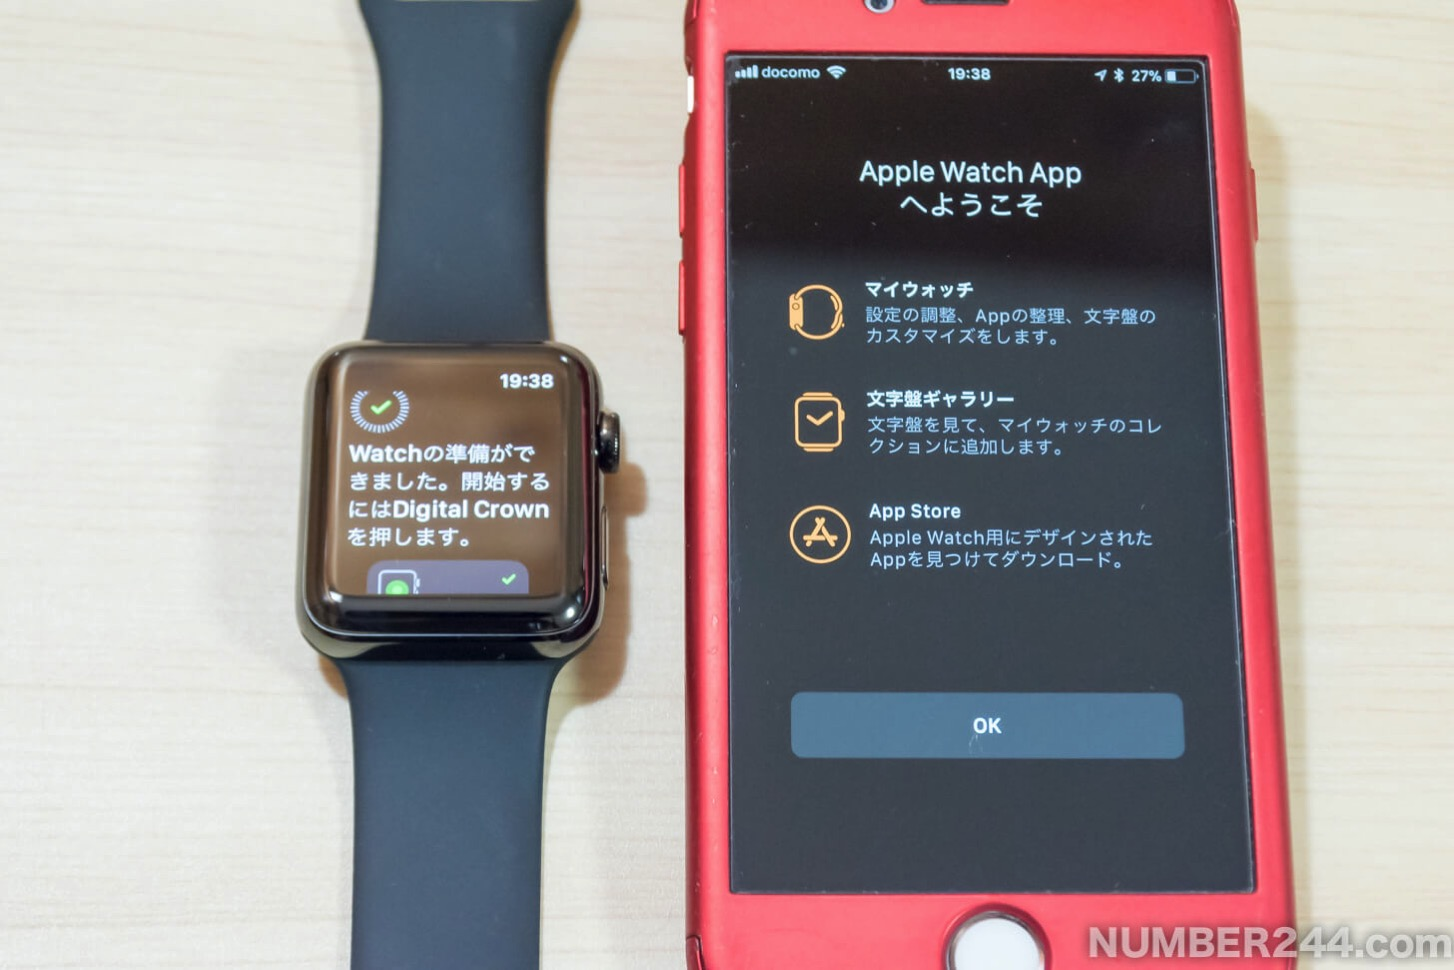 Initial setting of Apple Watch 24